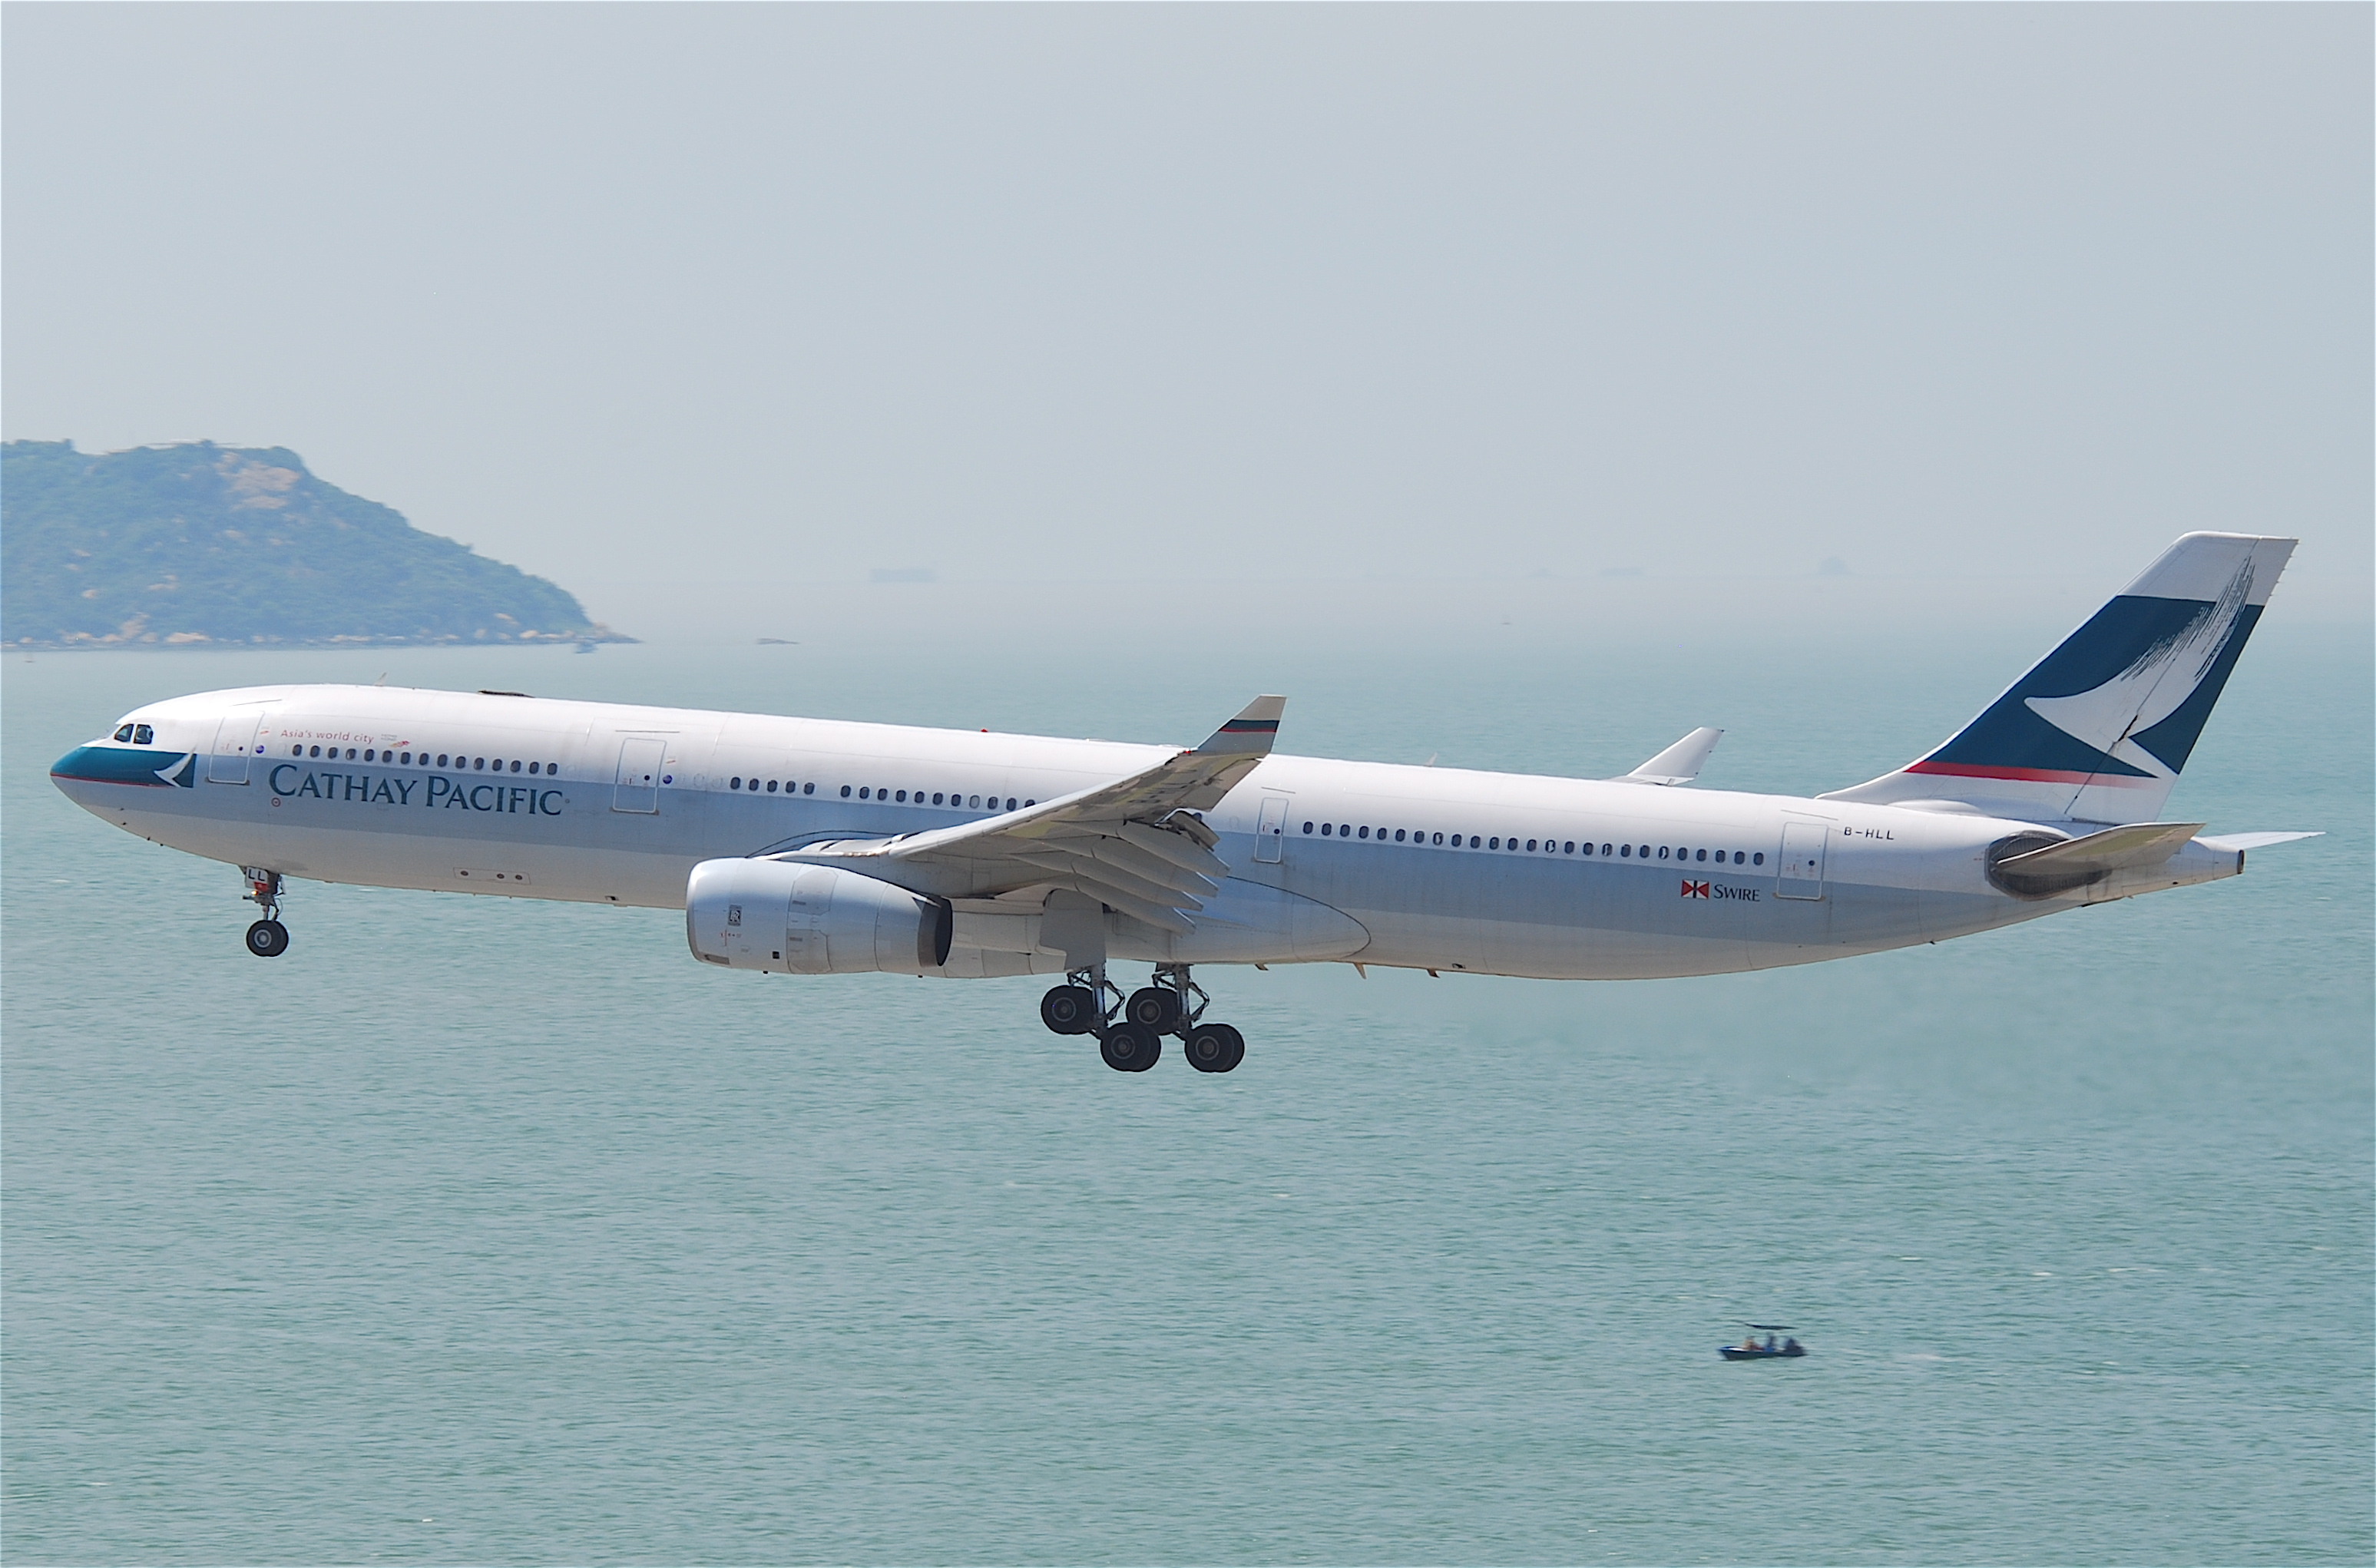 Cathay Pacific Flight 780 - Wikipedia